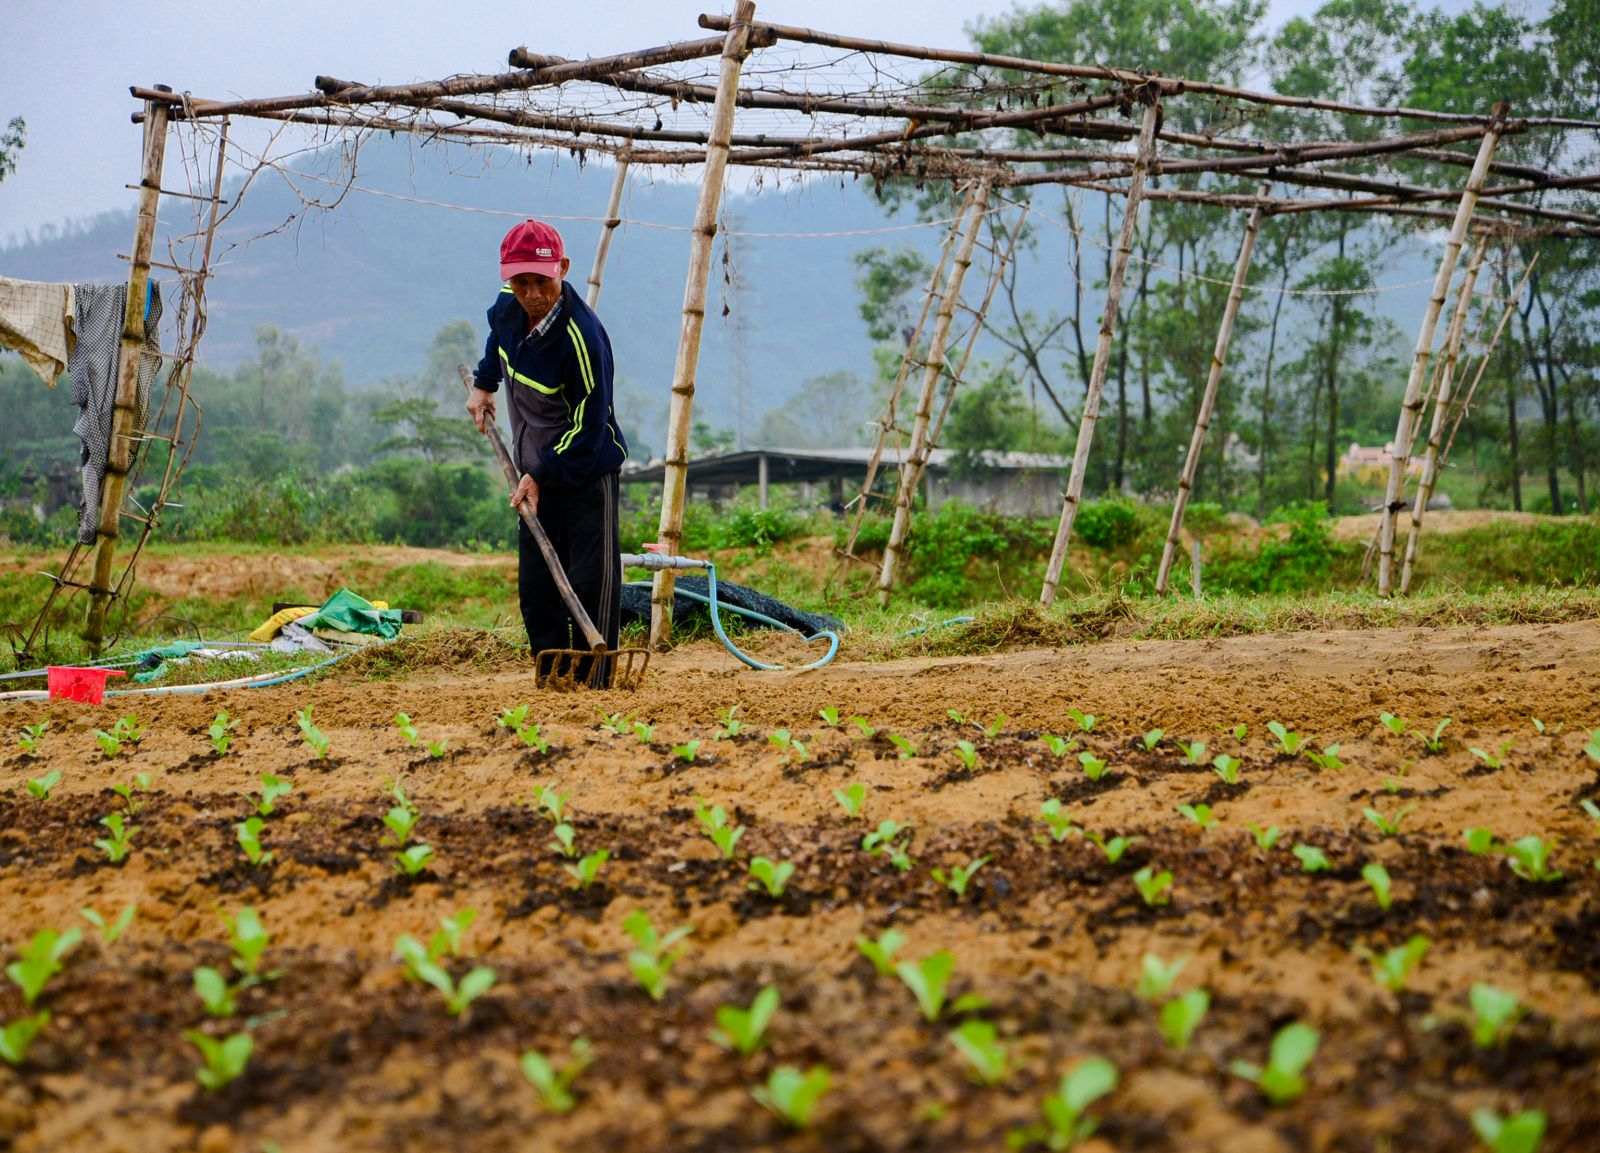 Taking advantage of the favorable weather, local people collect the dead crops and prepare the soil